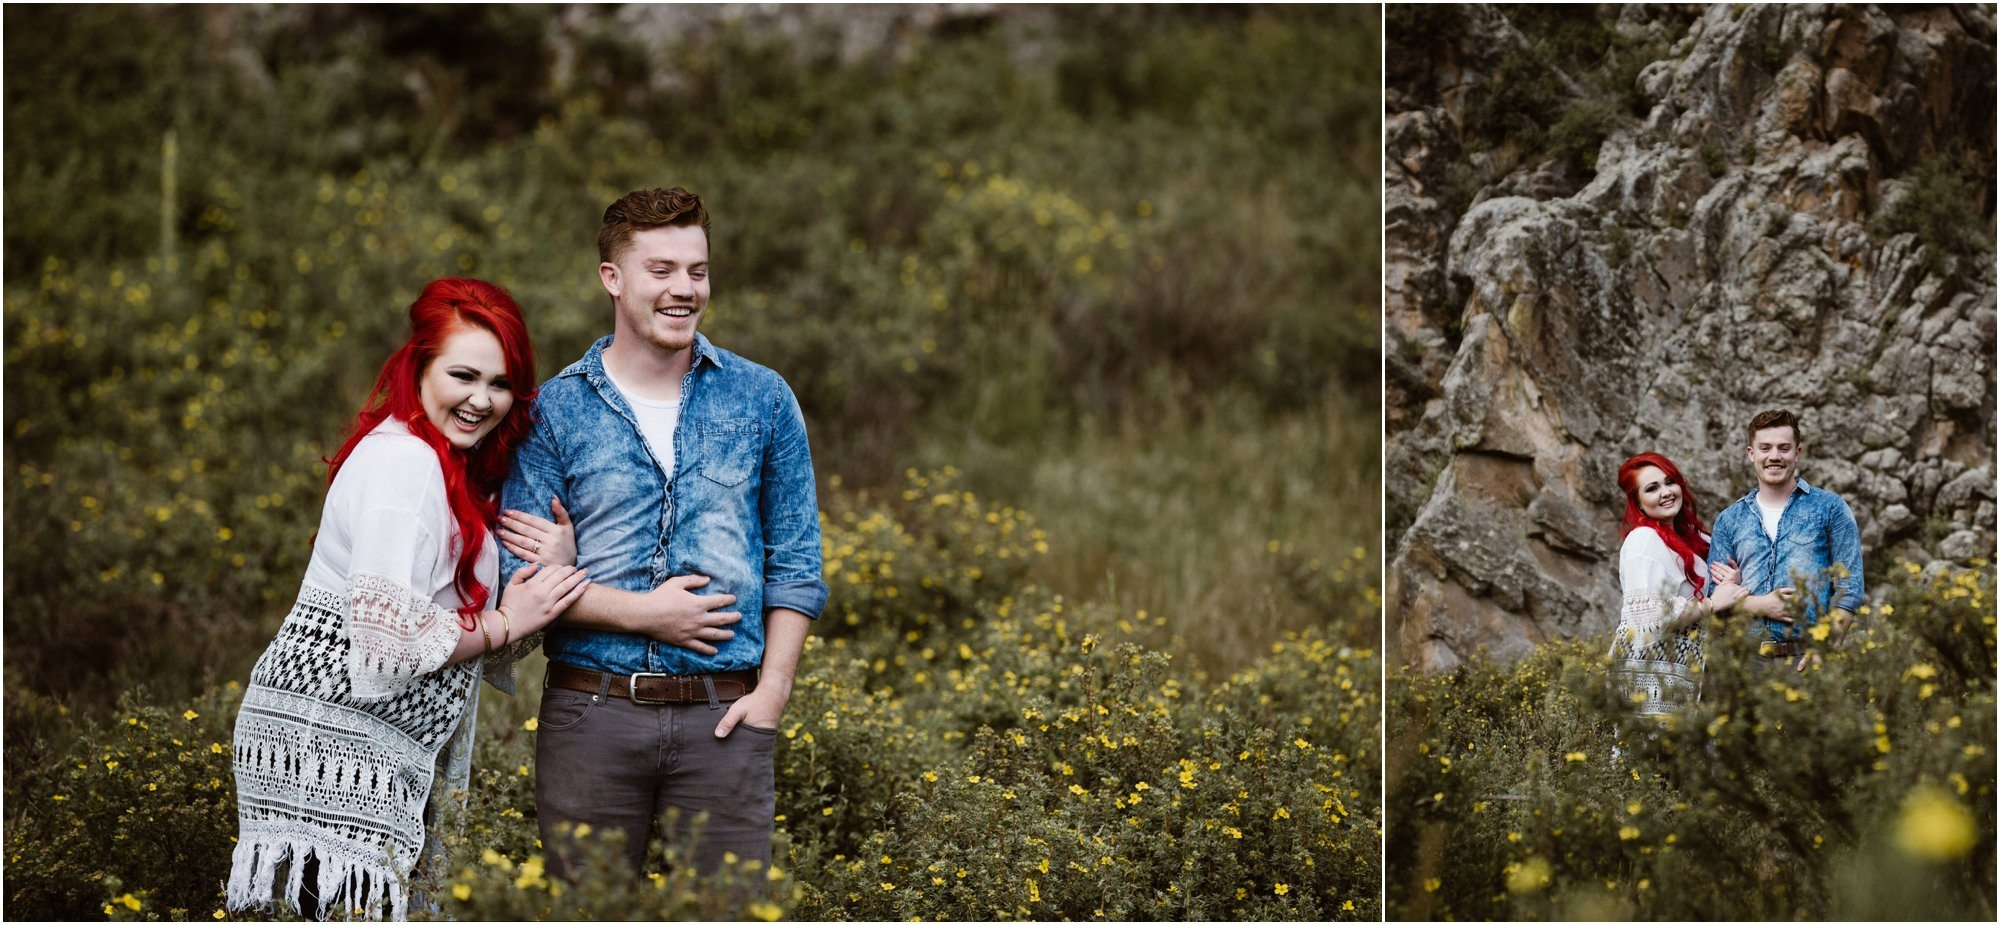 009Blue Rose Photography_ Albuquerque, Santa Fe, New Mexico wedding photographer_ engagement pictures